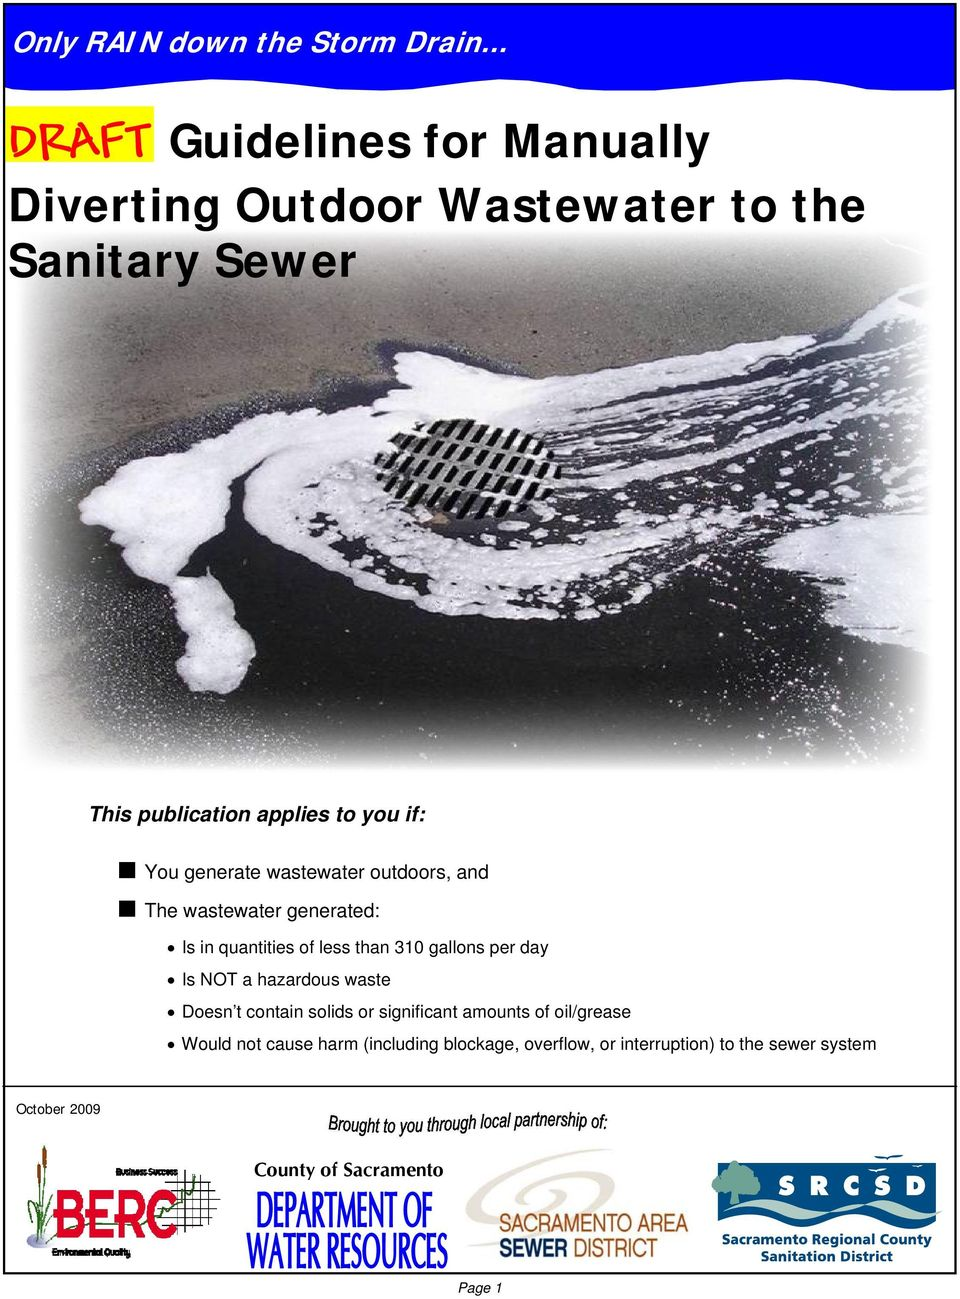 You generate wastewater outdoors, and The wastewater generated: Is in quantities of less than 310 gallons per day Is